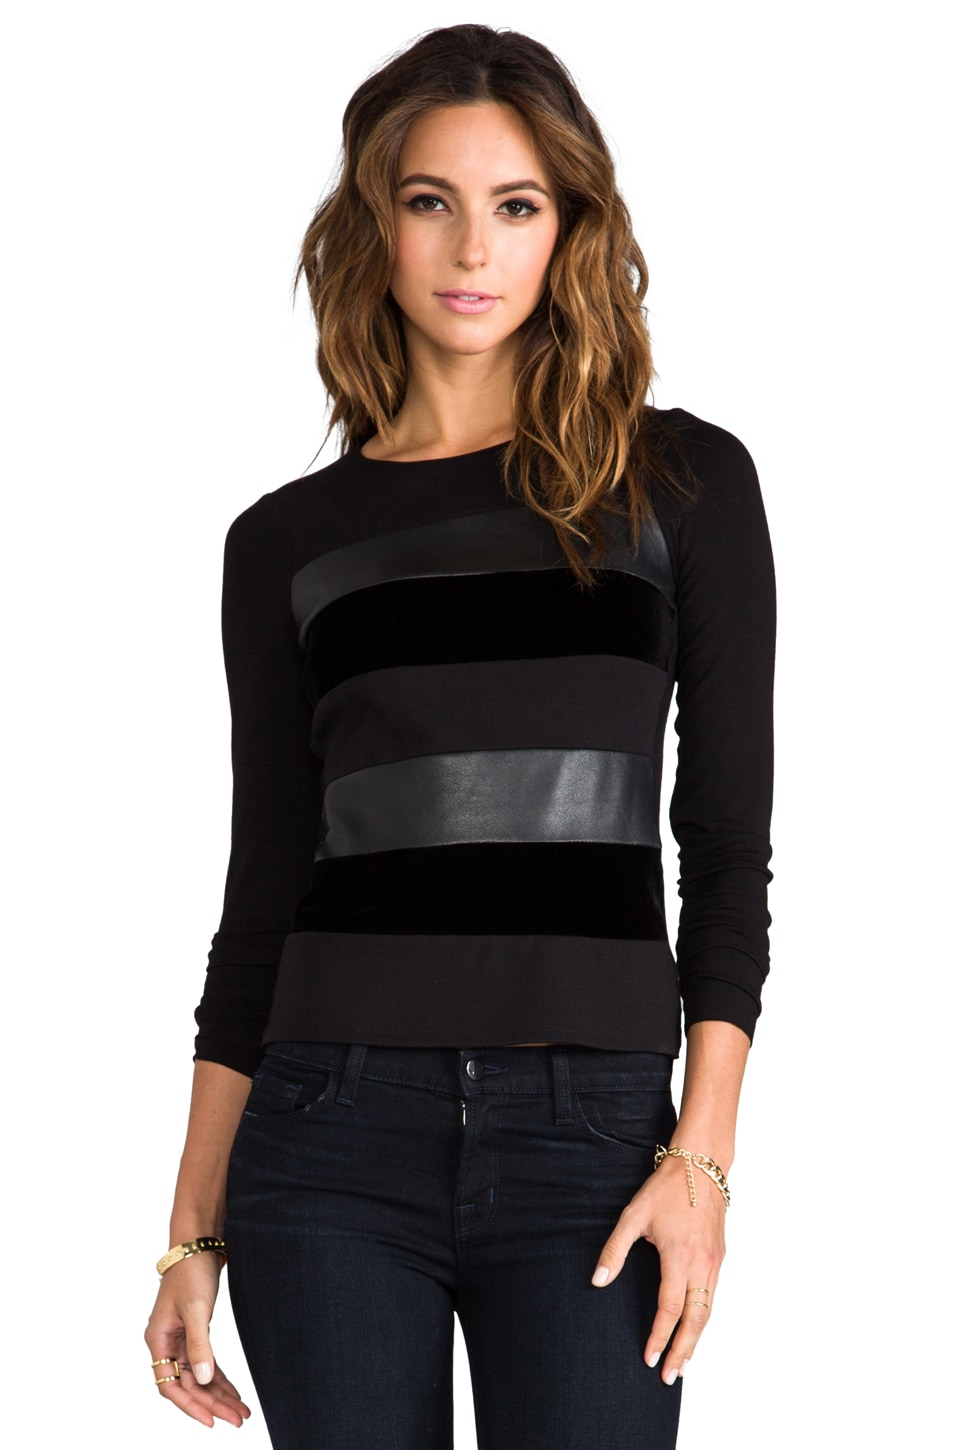 Bailey 44 Demon Vendetta Striped Top in Black